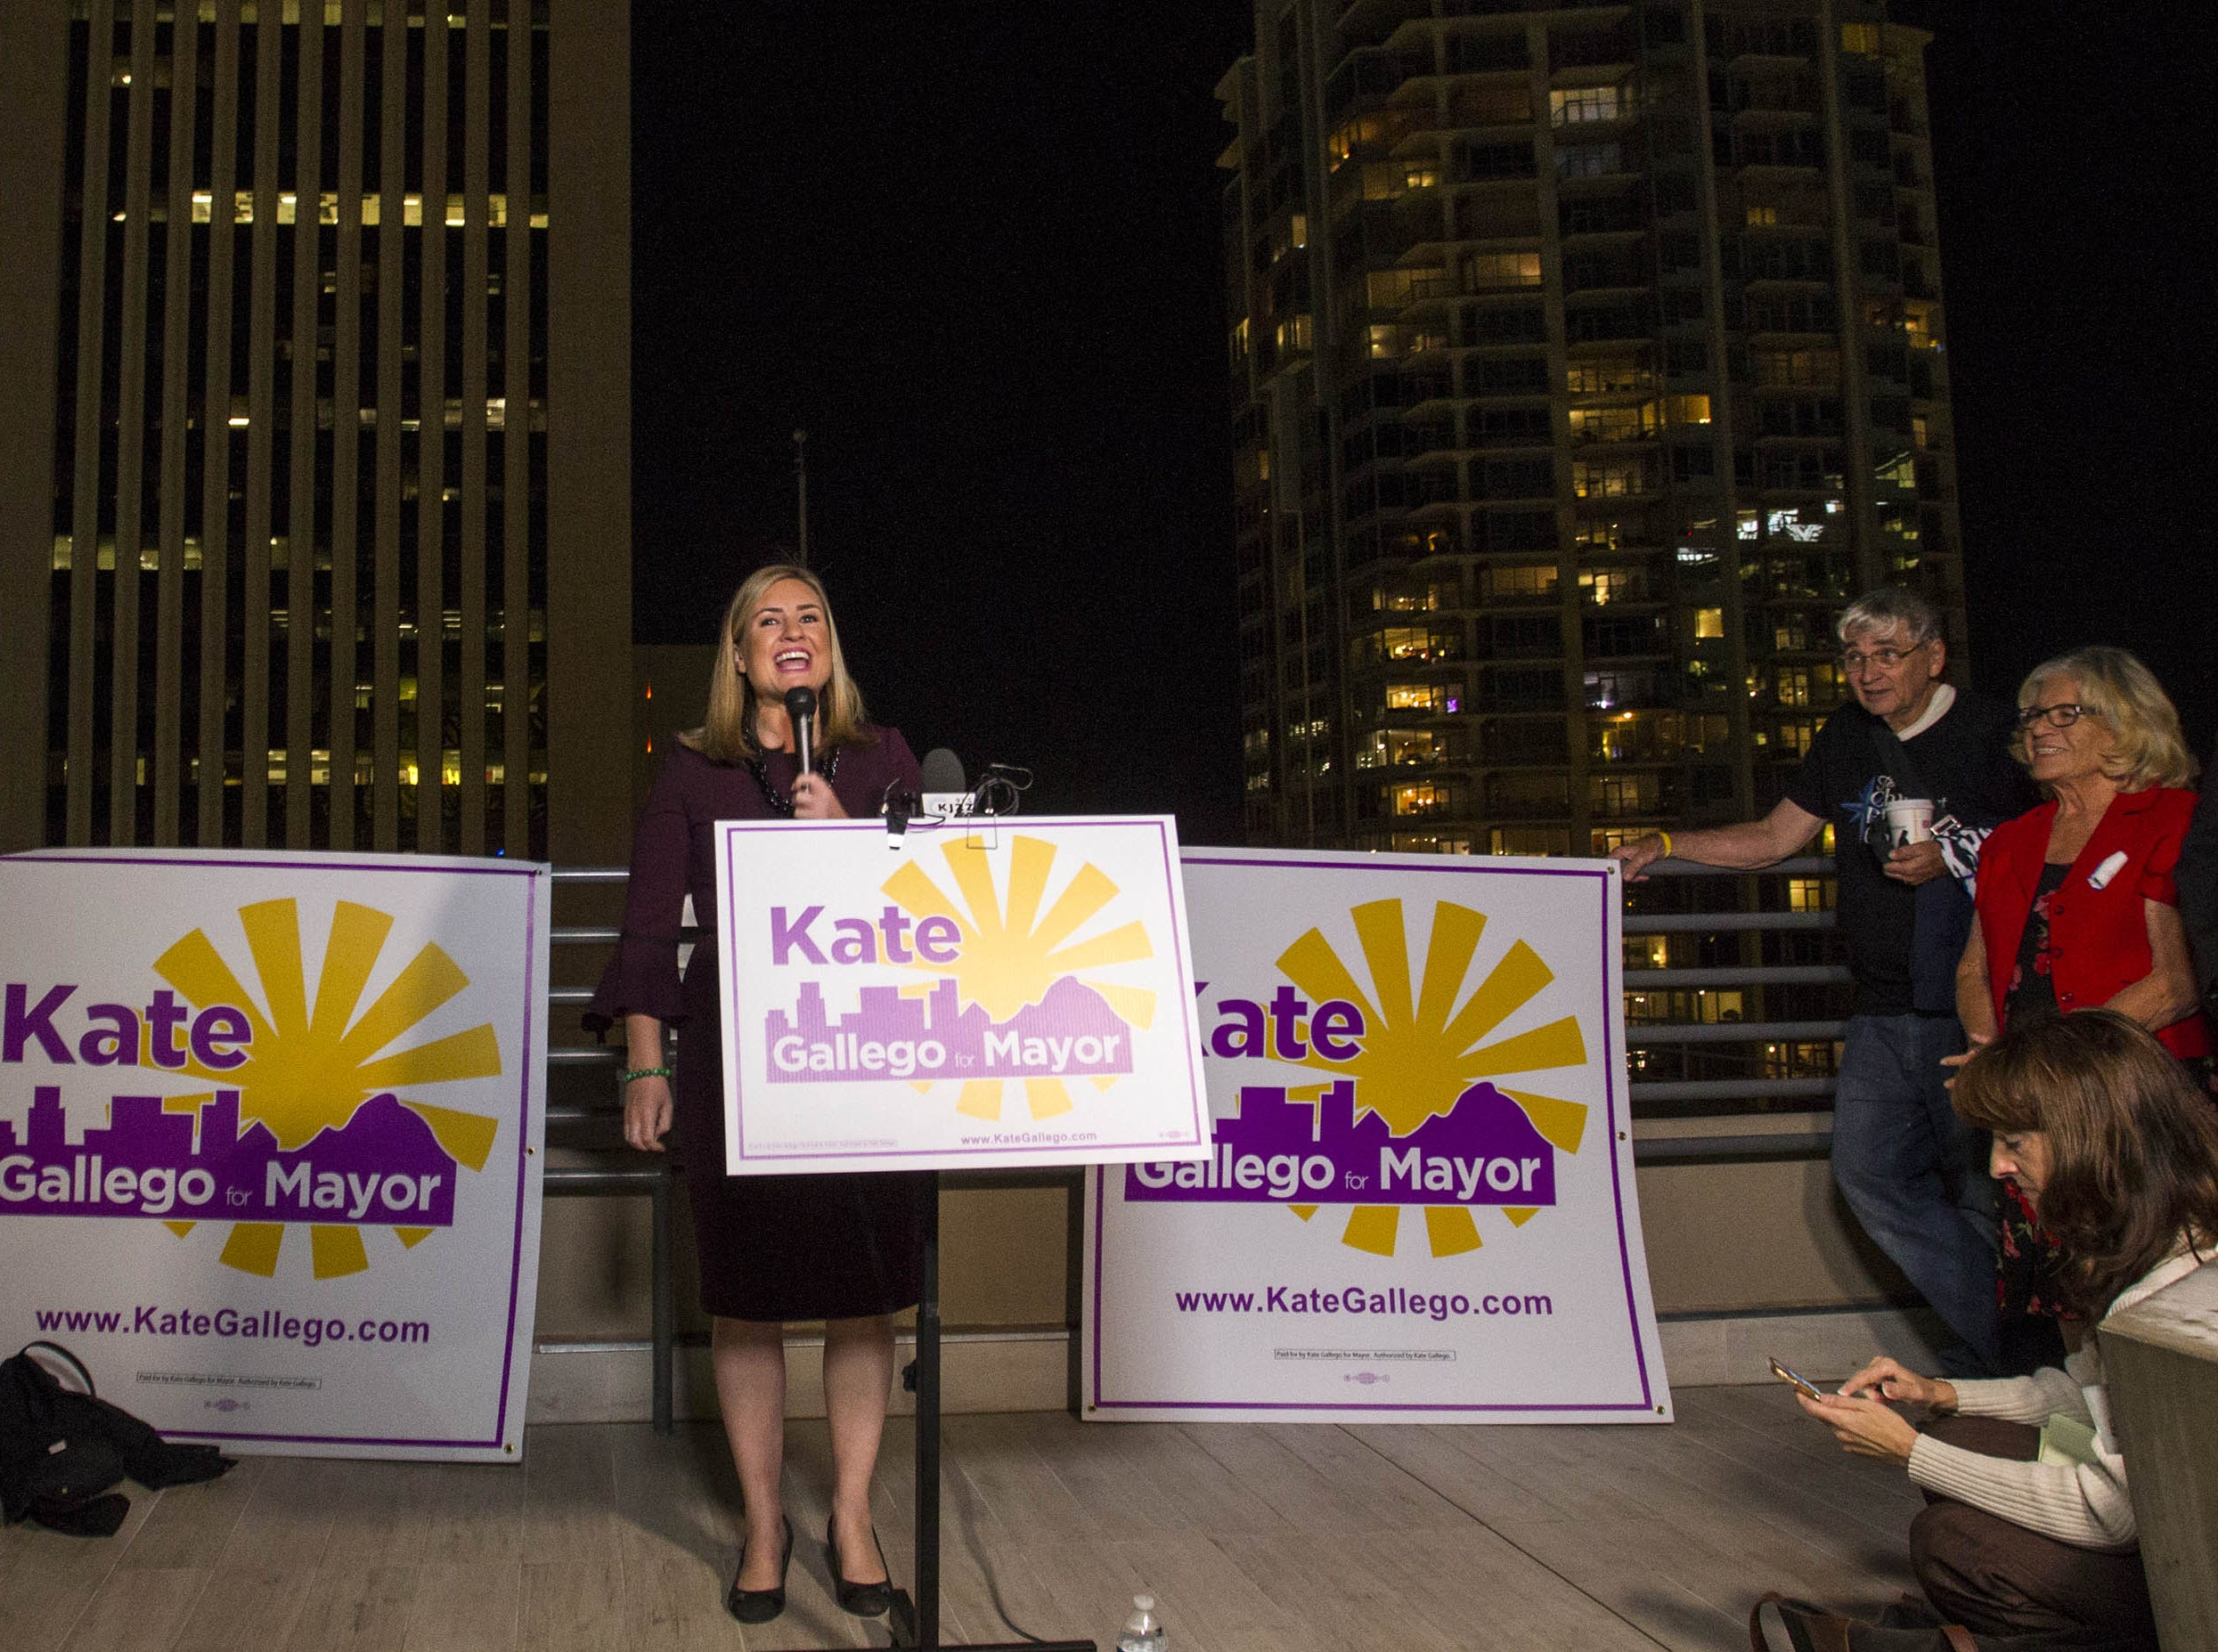 Phoenix mayoral candidate Kate Gallego talks to a crowd of supporters at the Hilton Garden Inn in Phoenix on Nov. 6, 2018.